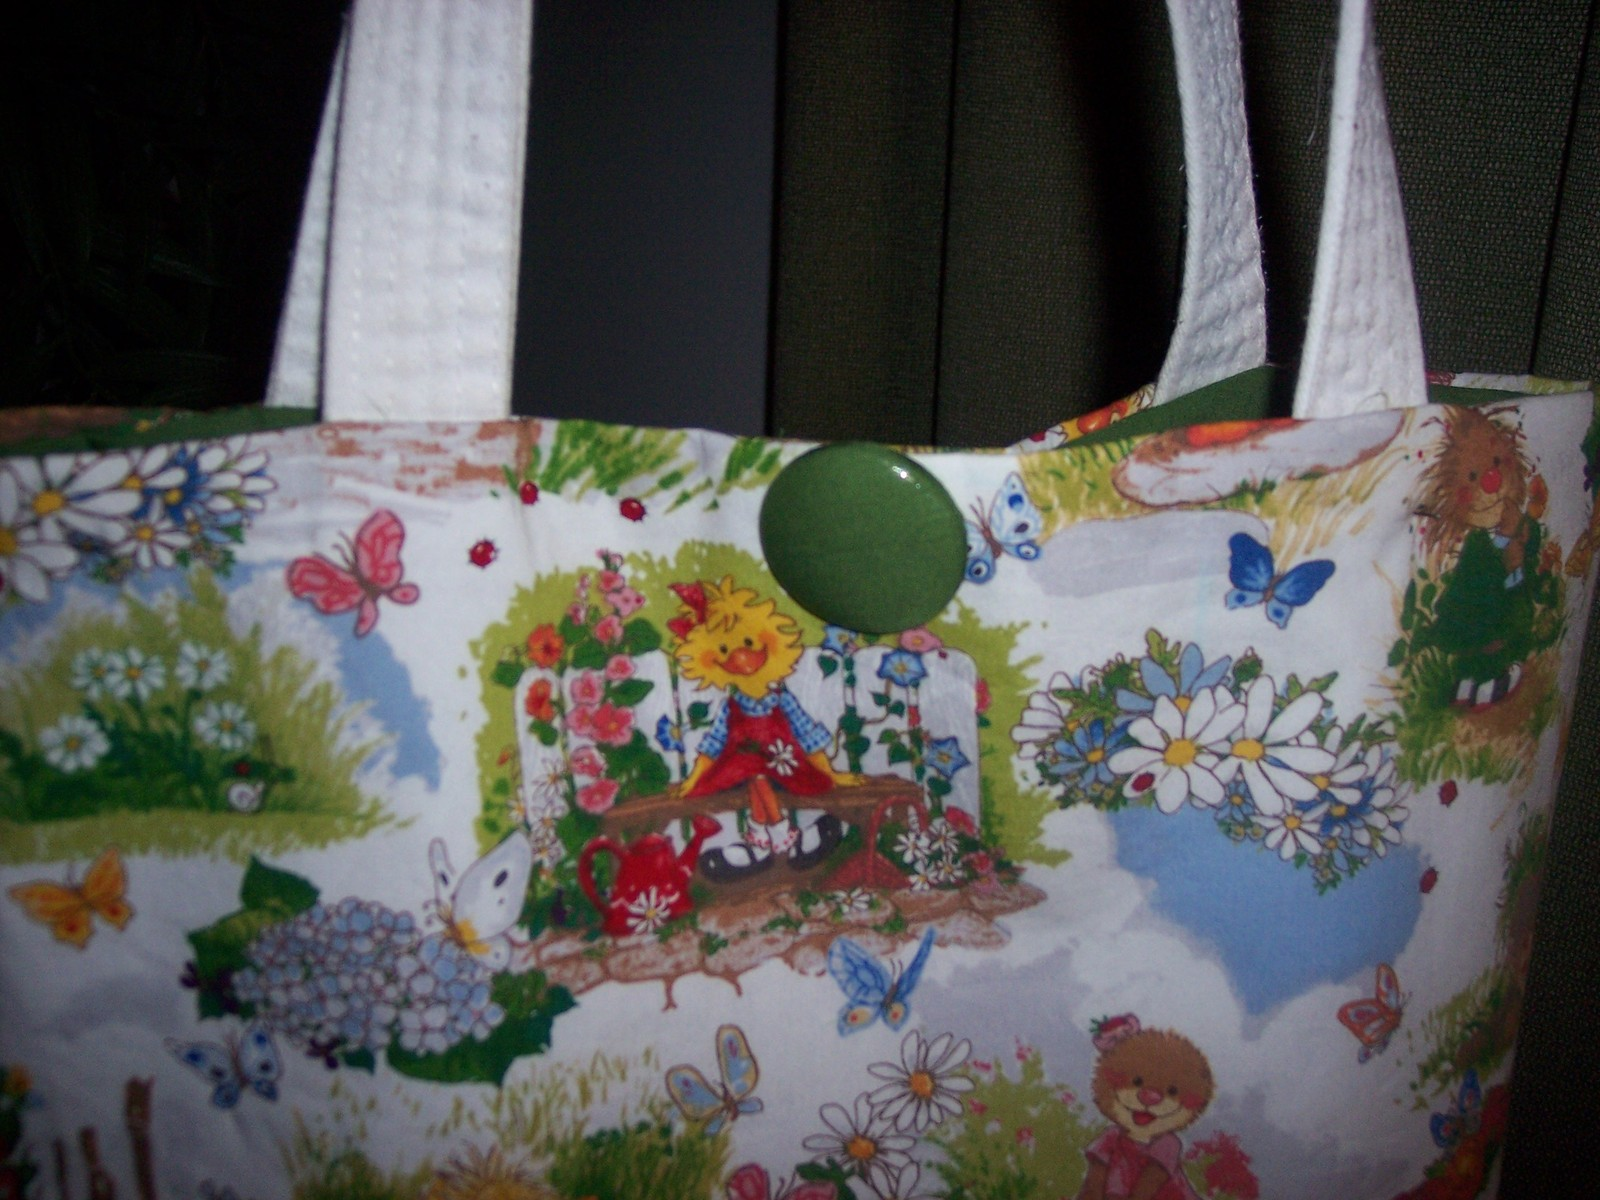 Suzy's Zoo Tote Bag Shopper Cute Spring Scene Handmade Christmas Gift!